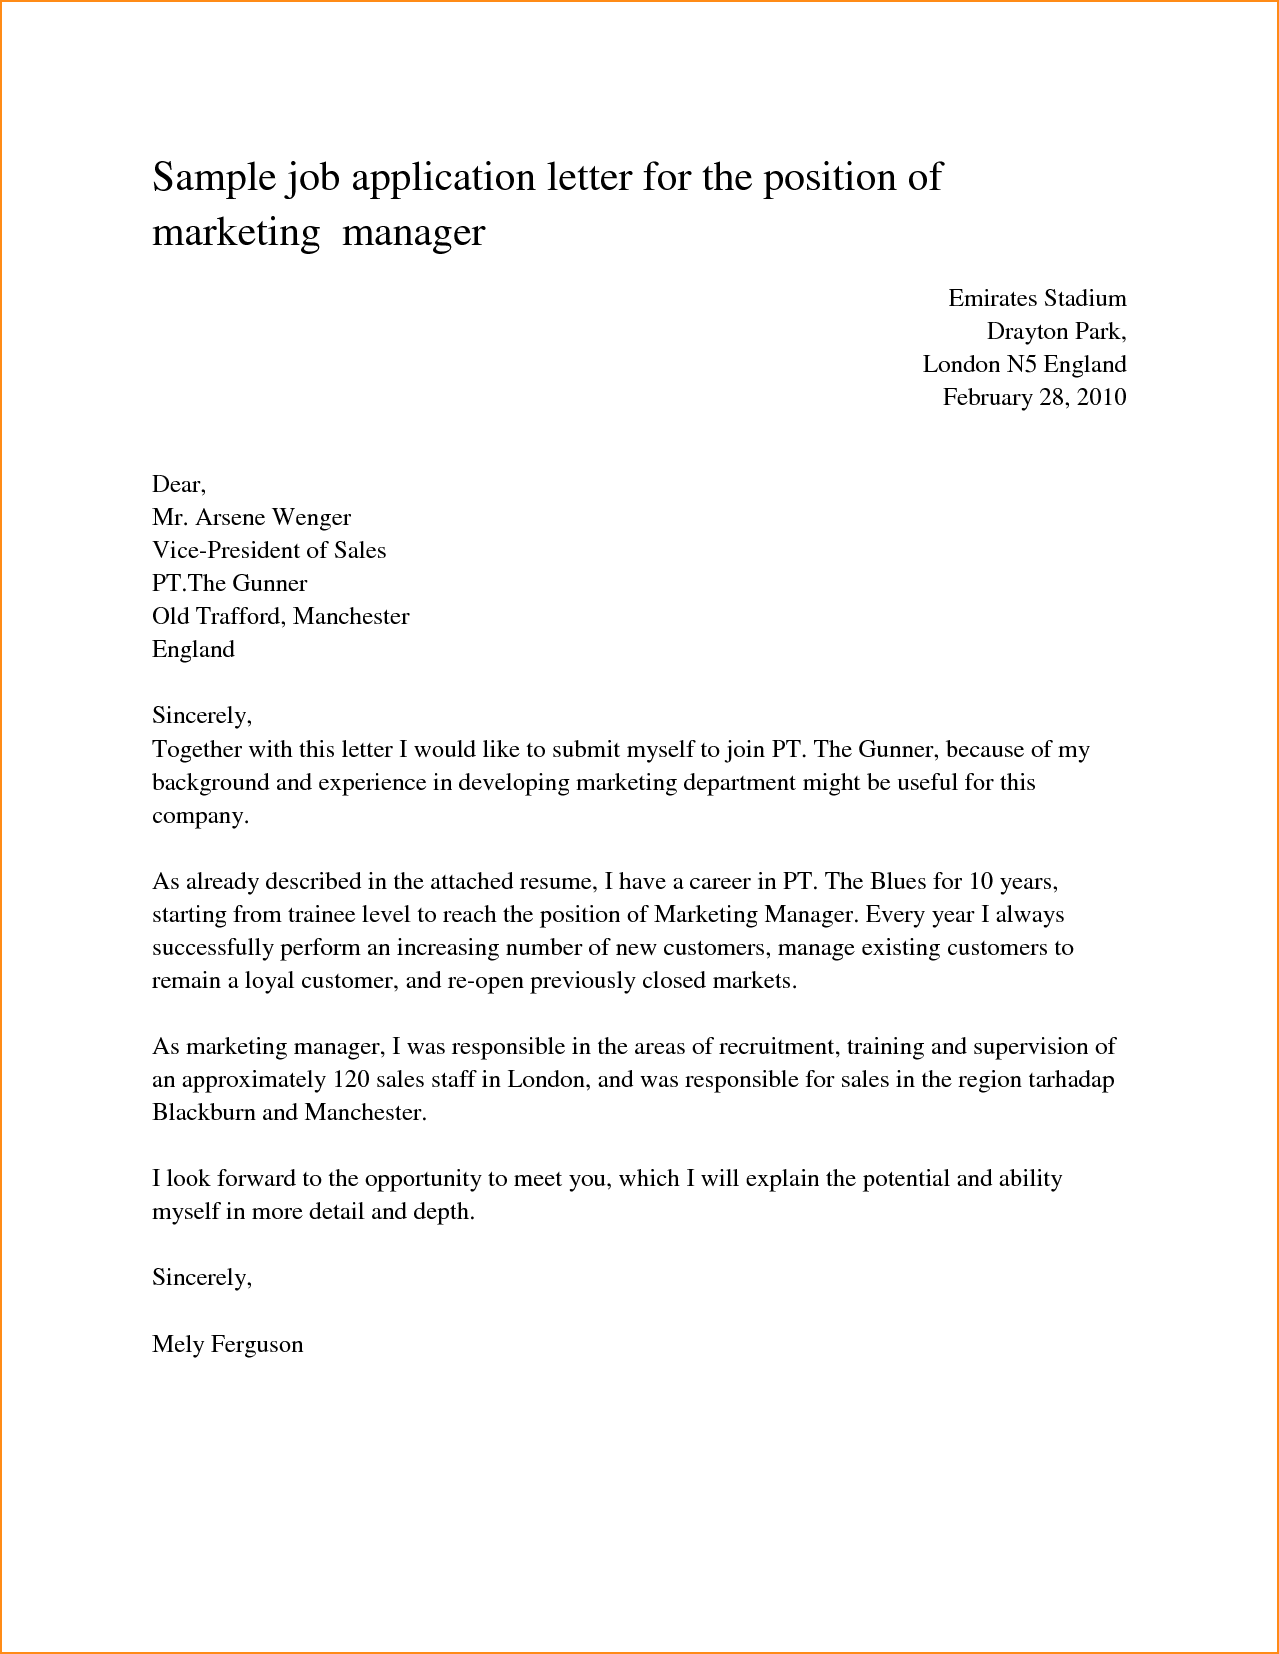 Sample job application letter for the position marketing manager application letter pdf formal apply for job exampleb best free home design idea inspiration madrichimfo Image collections